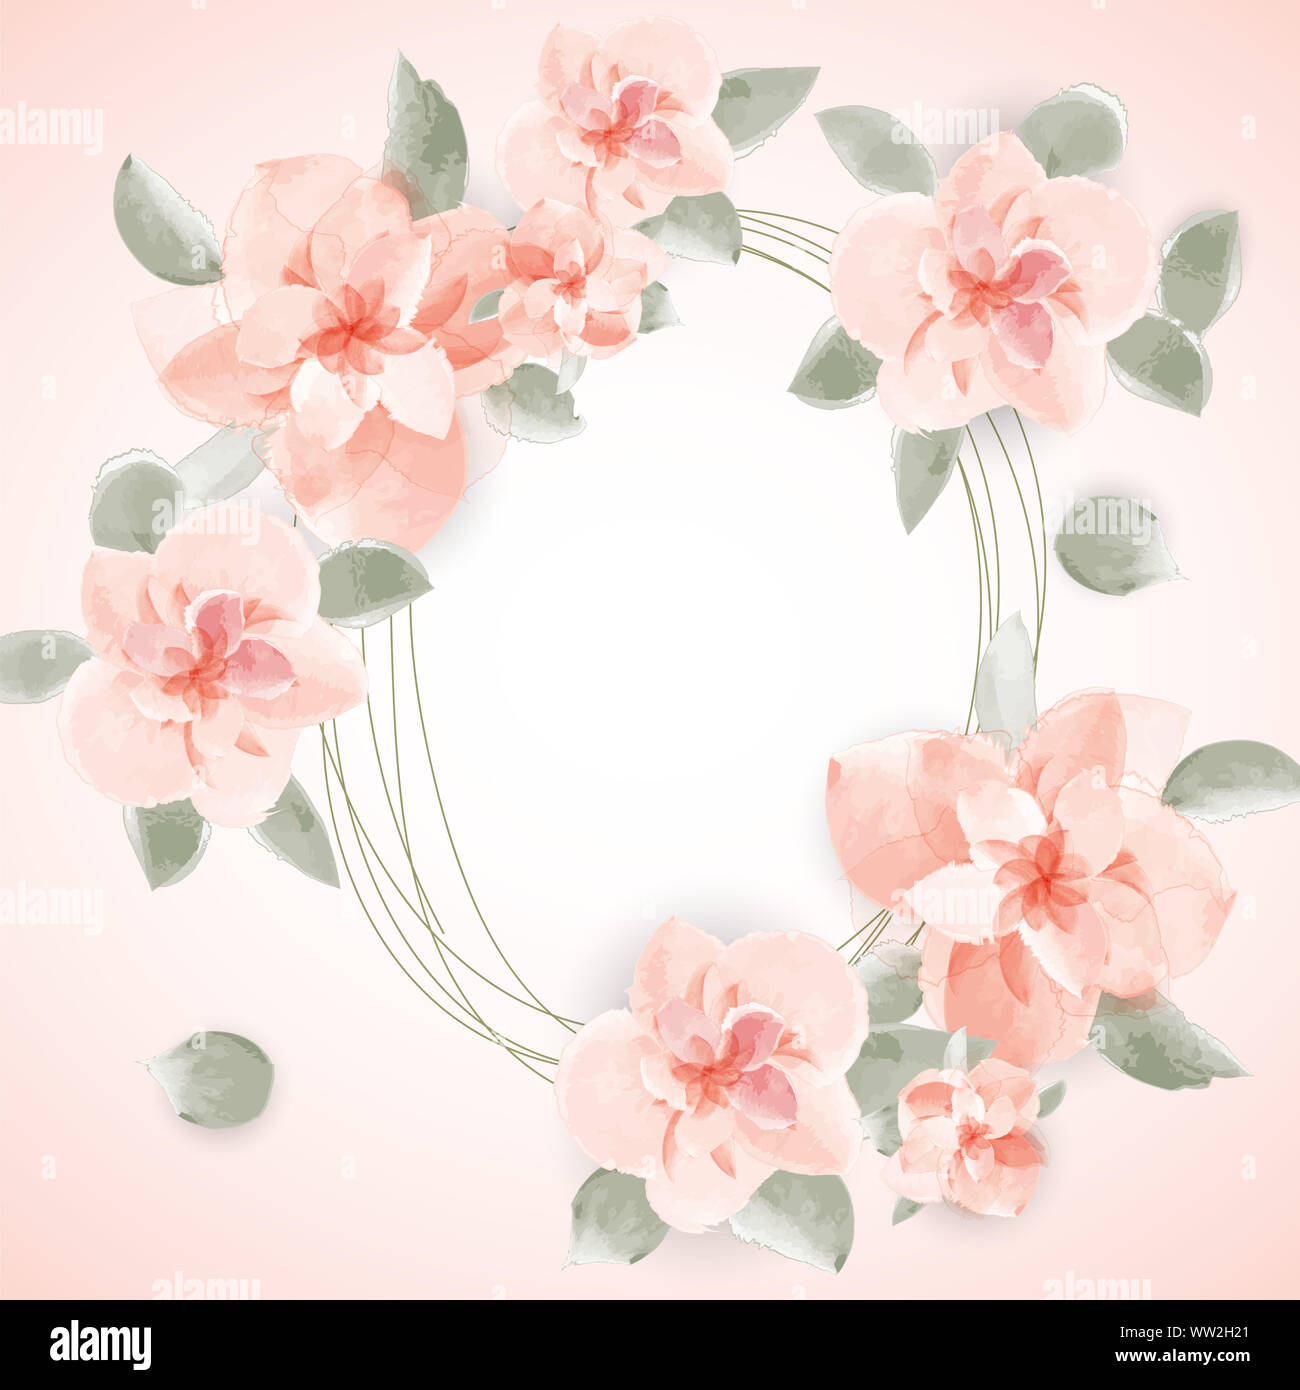 Watercolor Floral Background For Text Paper Cut Design